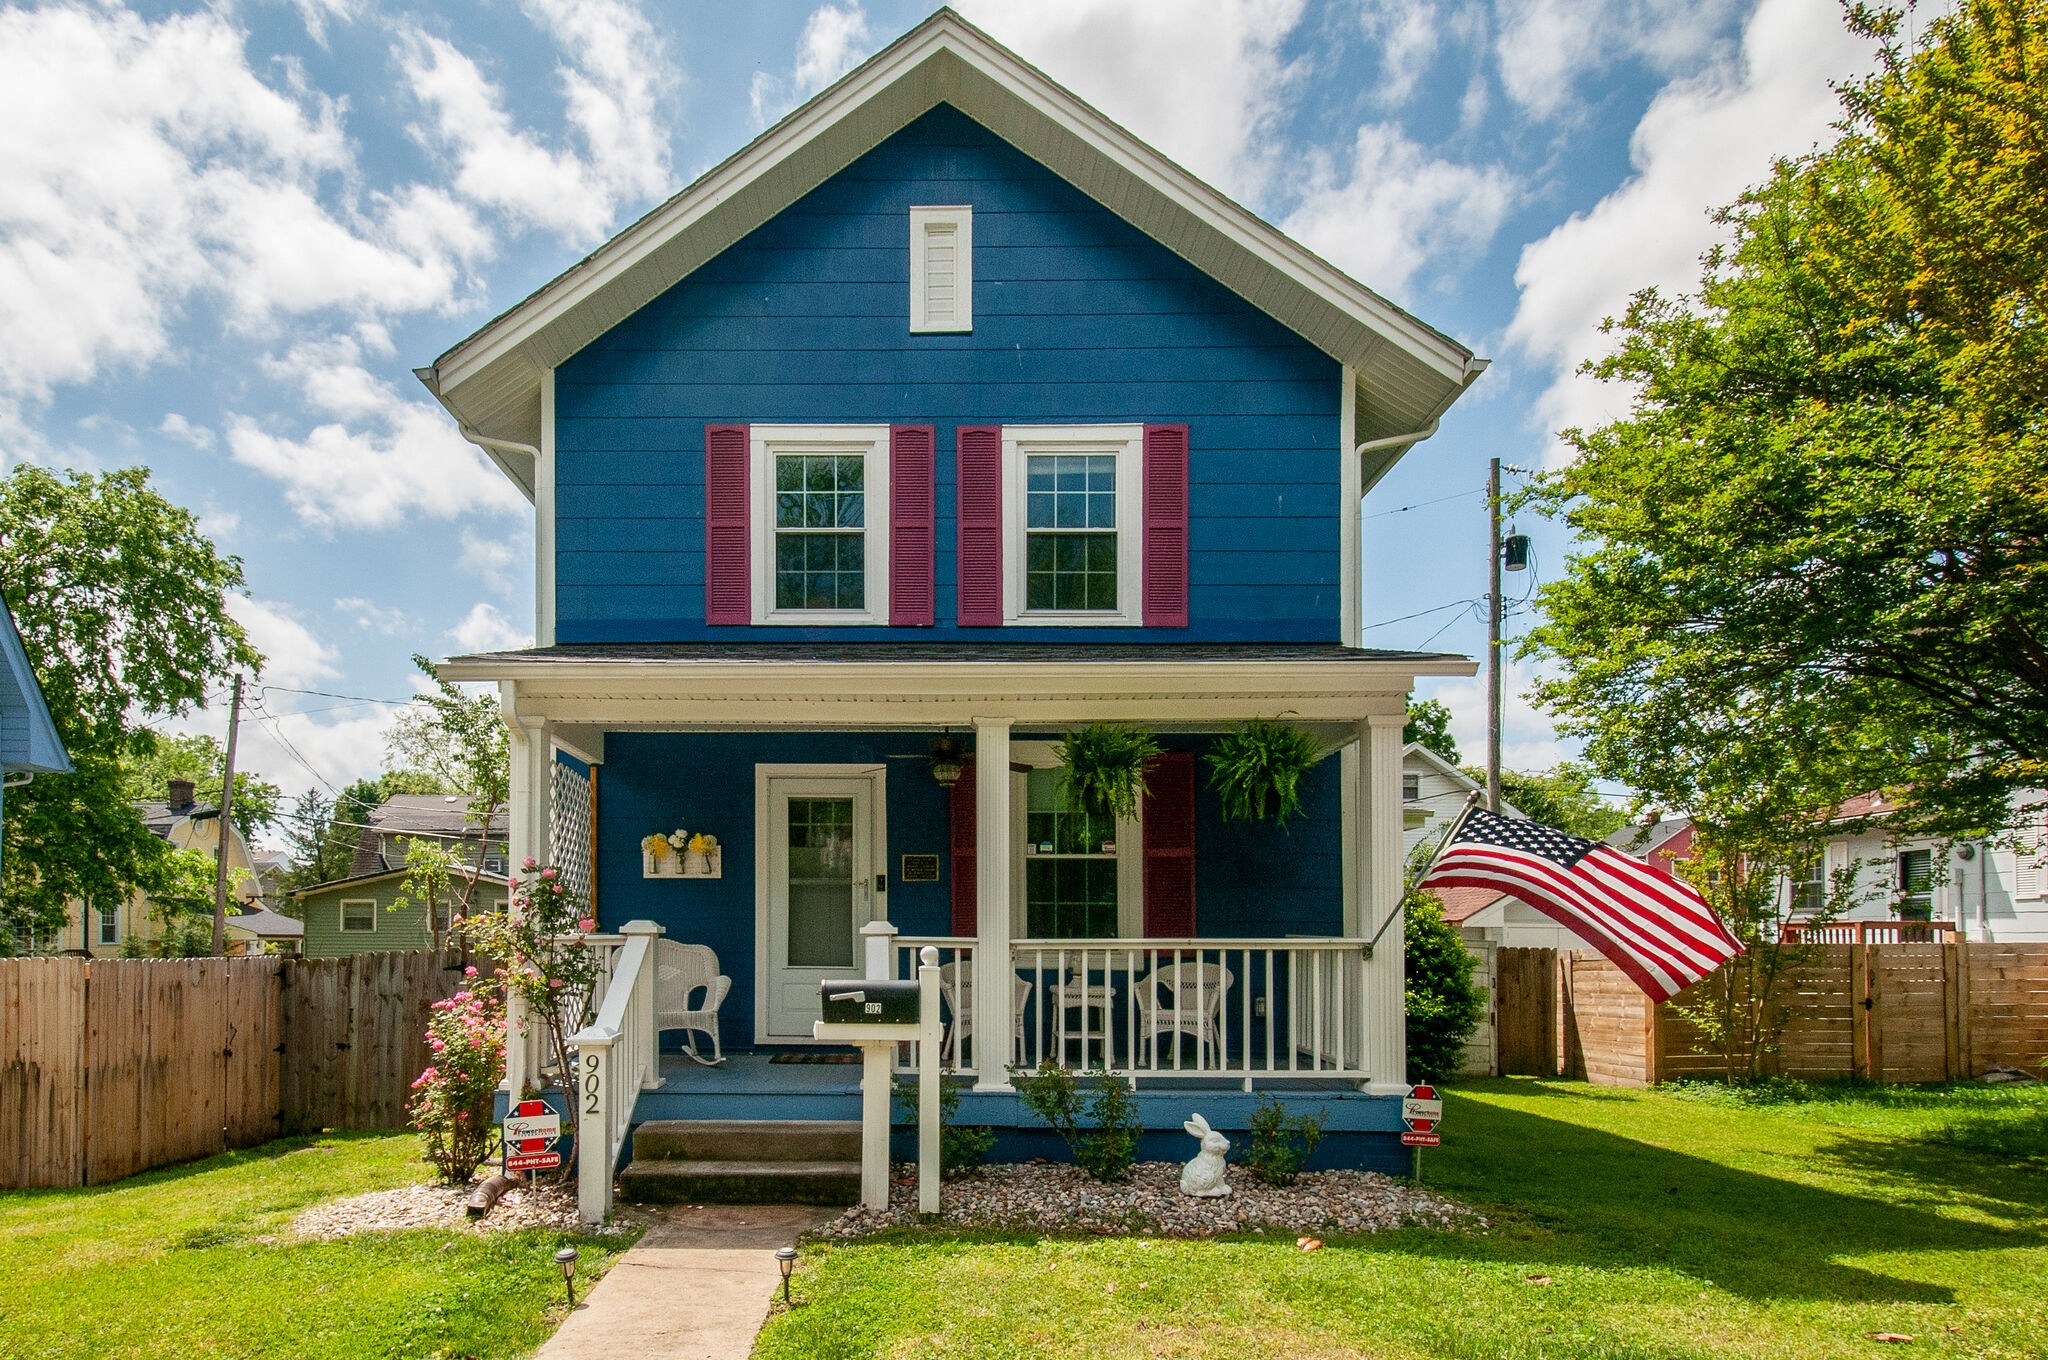 902 Jones St Property Photo - Old Hickory, TN real estate listing